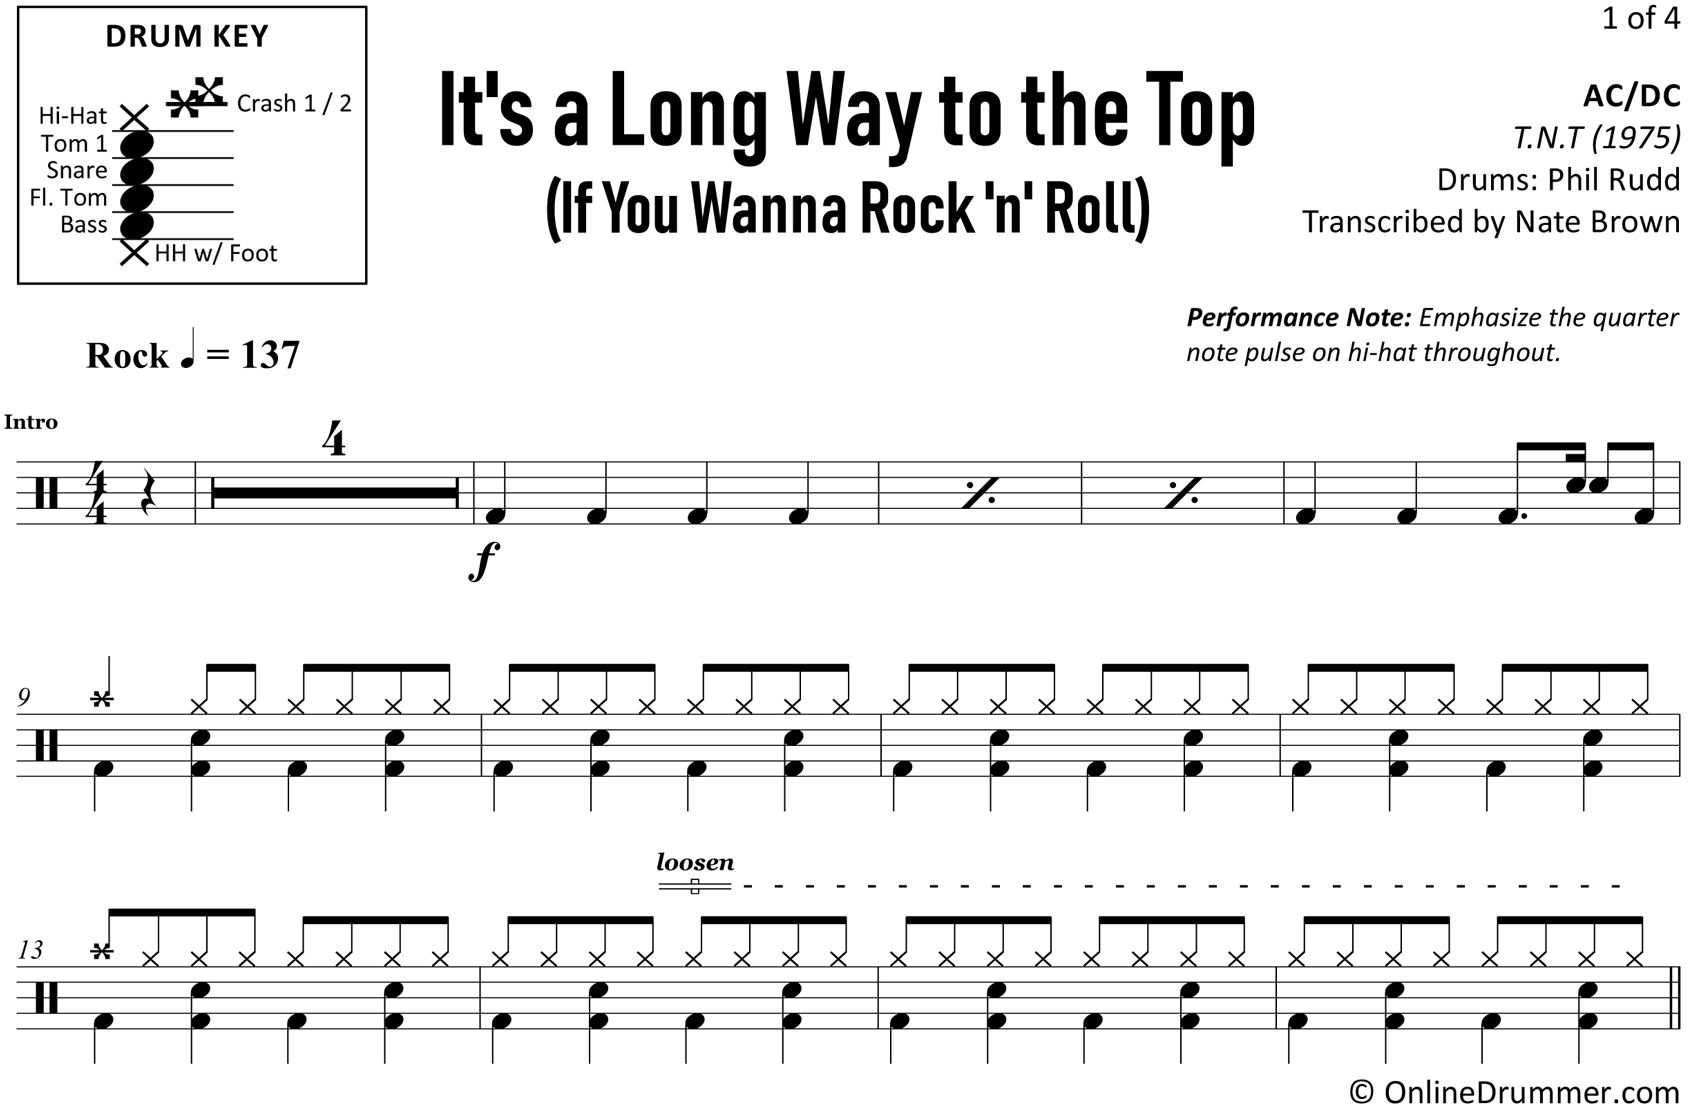 It's a Long Way to the Top (If You Wanna Rock 'n' Roll) - Drum Sheet Music